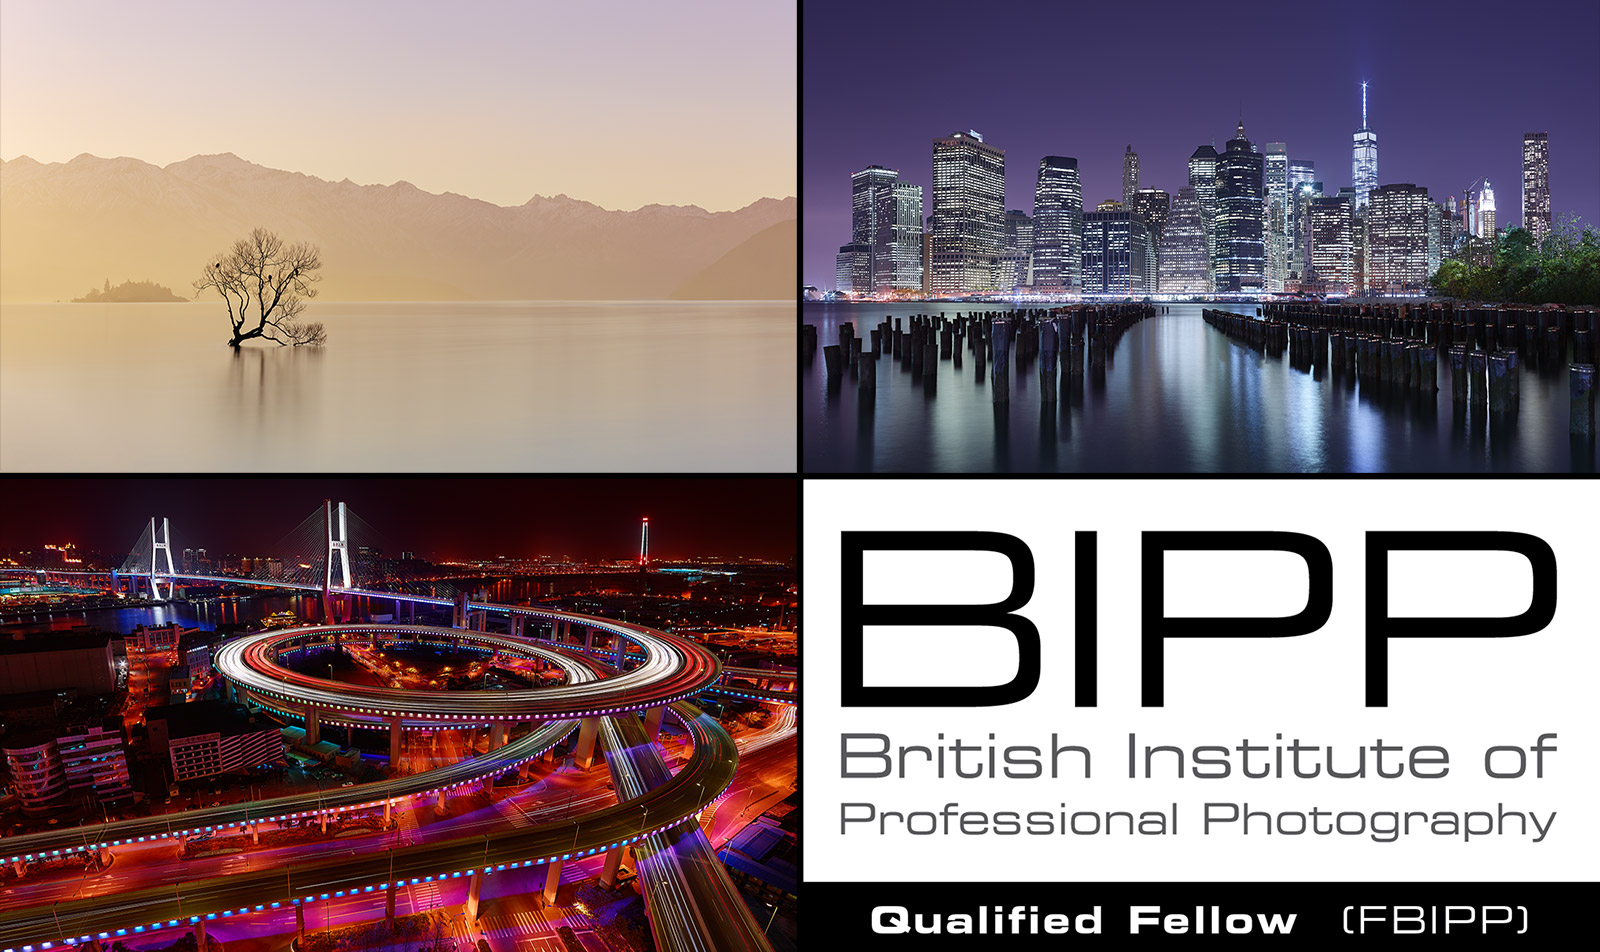 FBIPP Fellowship BIPP British Institute Professional Photography award 2015 qualification